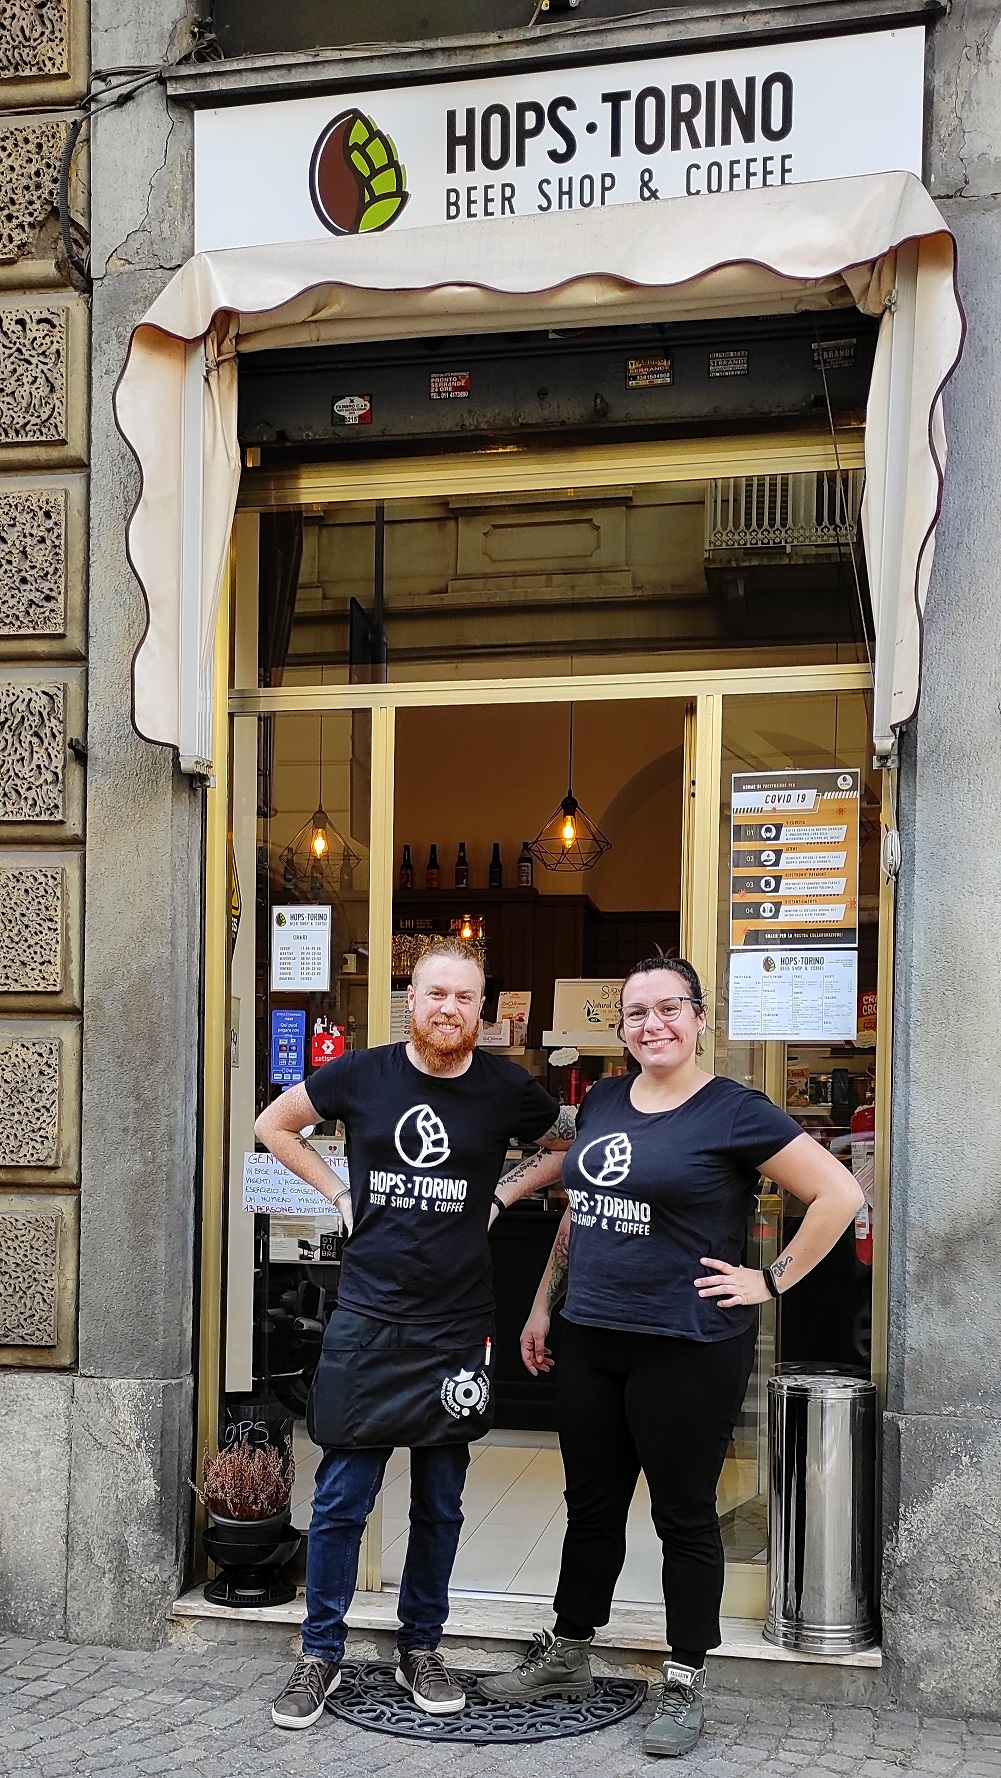 Hops Torino beer shop: save water and drink beer!